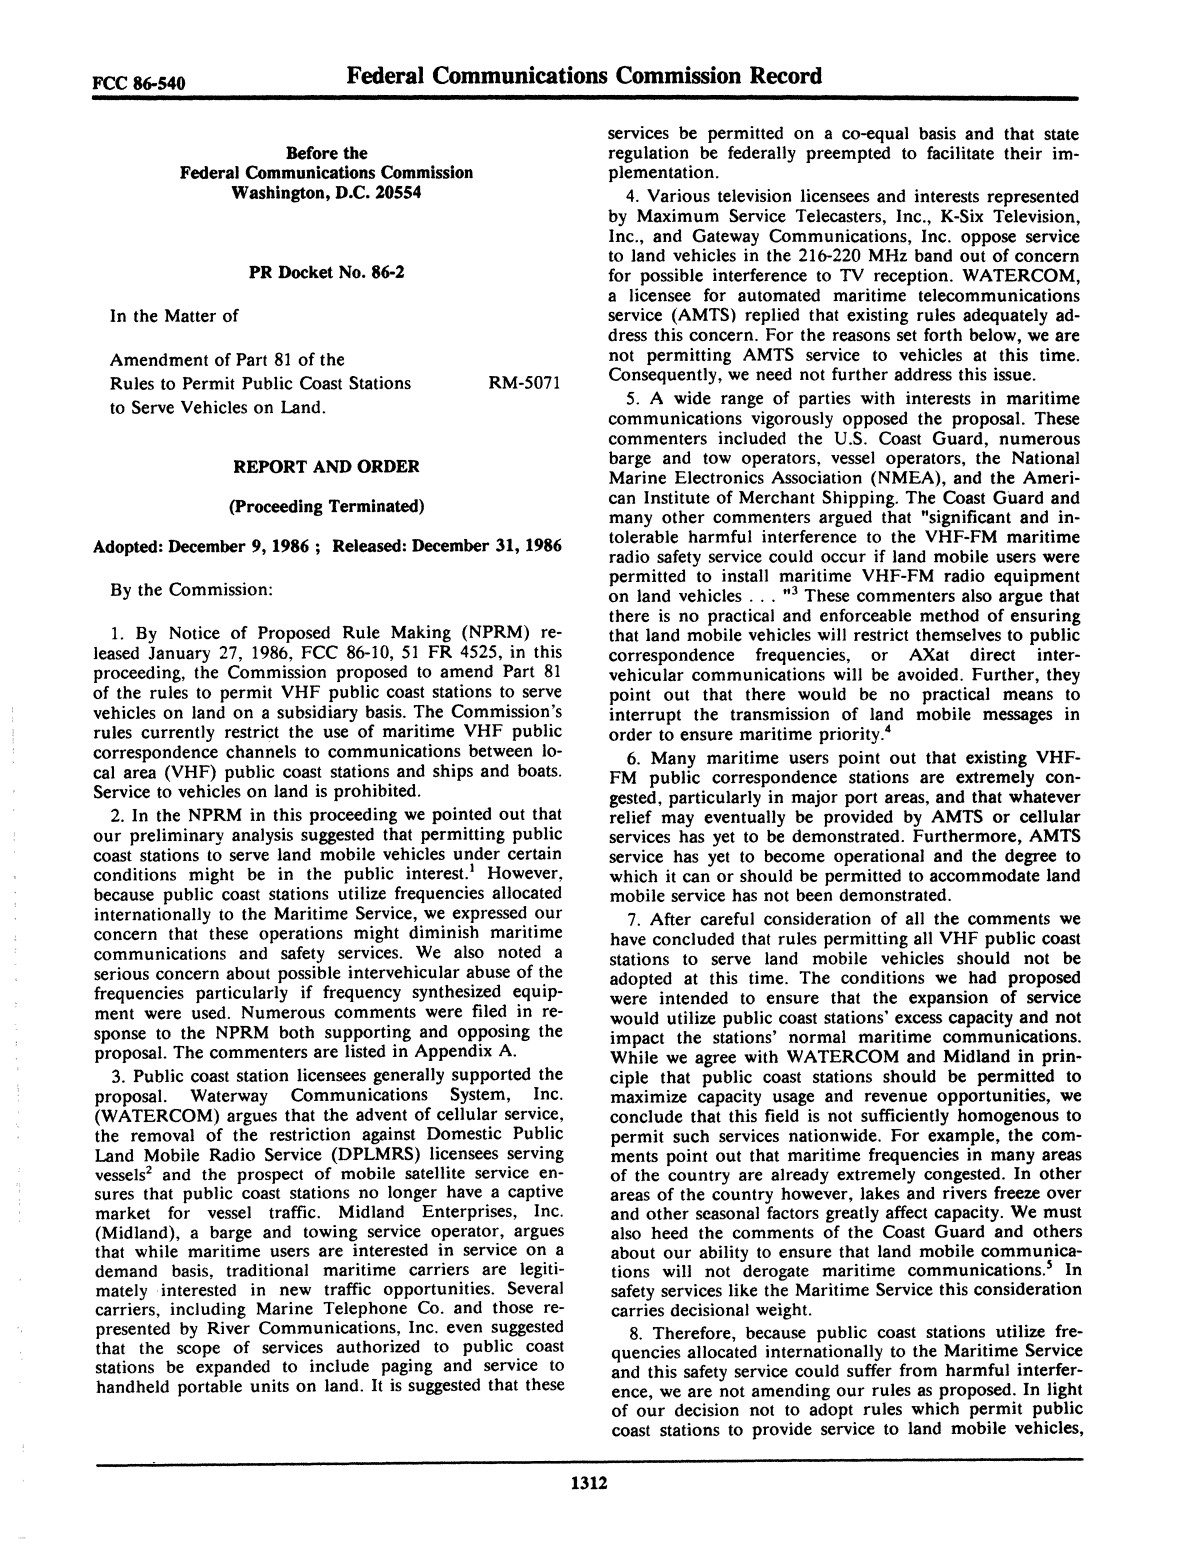 FCC Record, Volume 1, No. 7, Pages 1267 to 1368, December 22, 1986 - January 2, 1987                                                                                                      1312